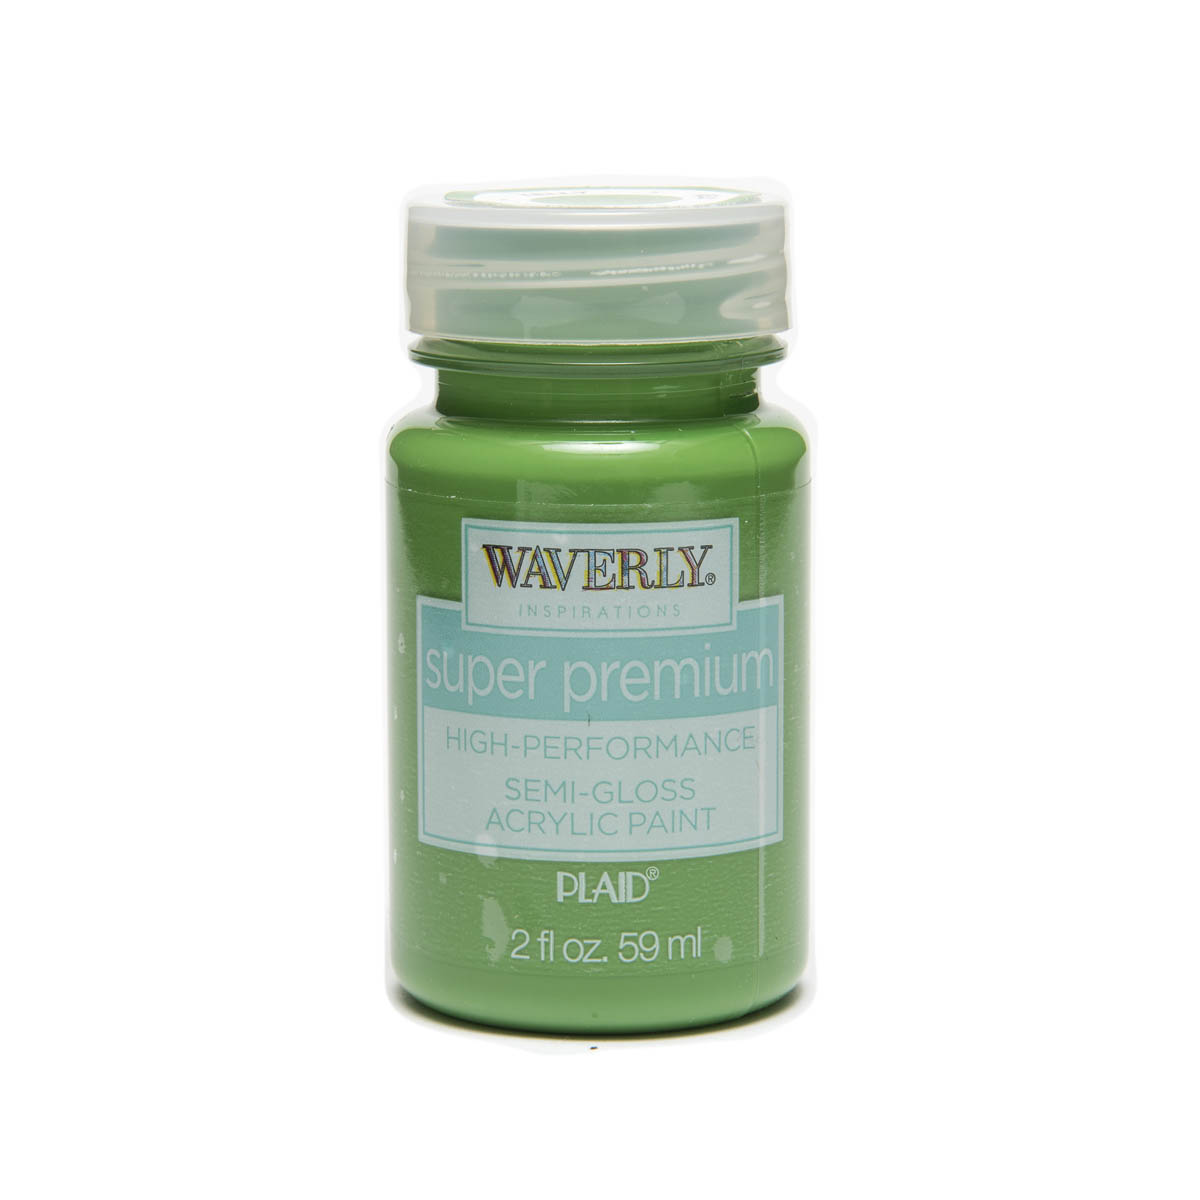 Waverly ® Inspirations Super Premium Semi-Gloss Acrylic Paint - Kelly, 2 oz.